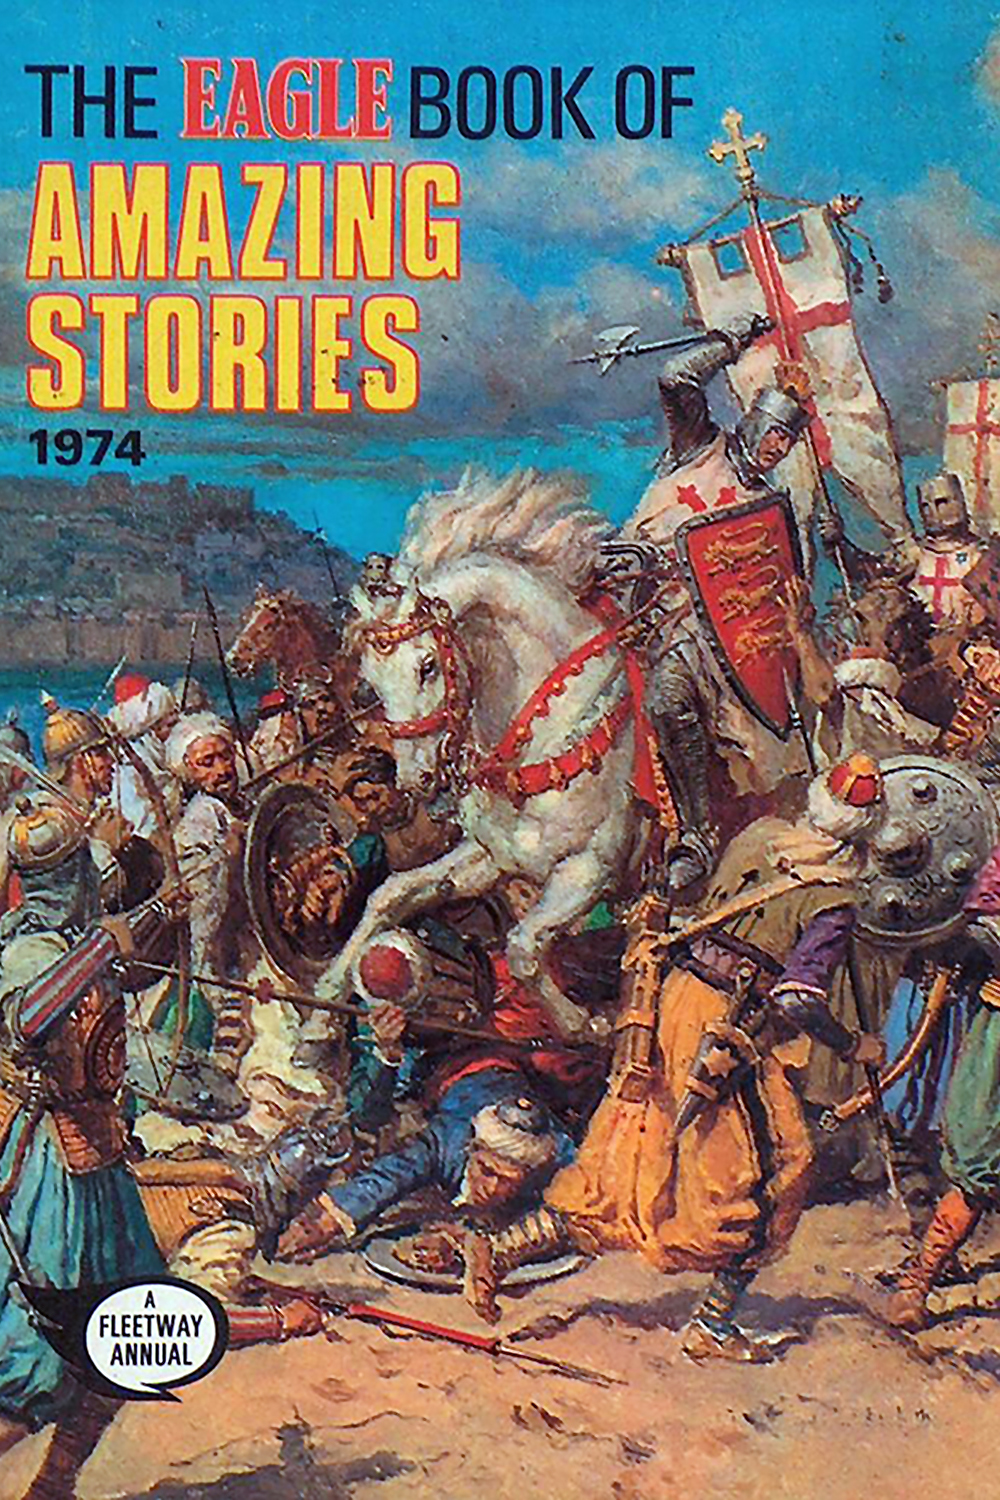 The Eagle Book of Amazing Stories 1974